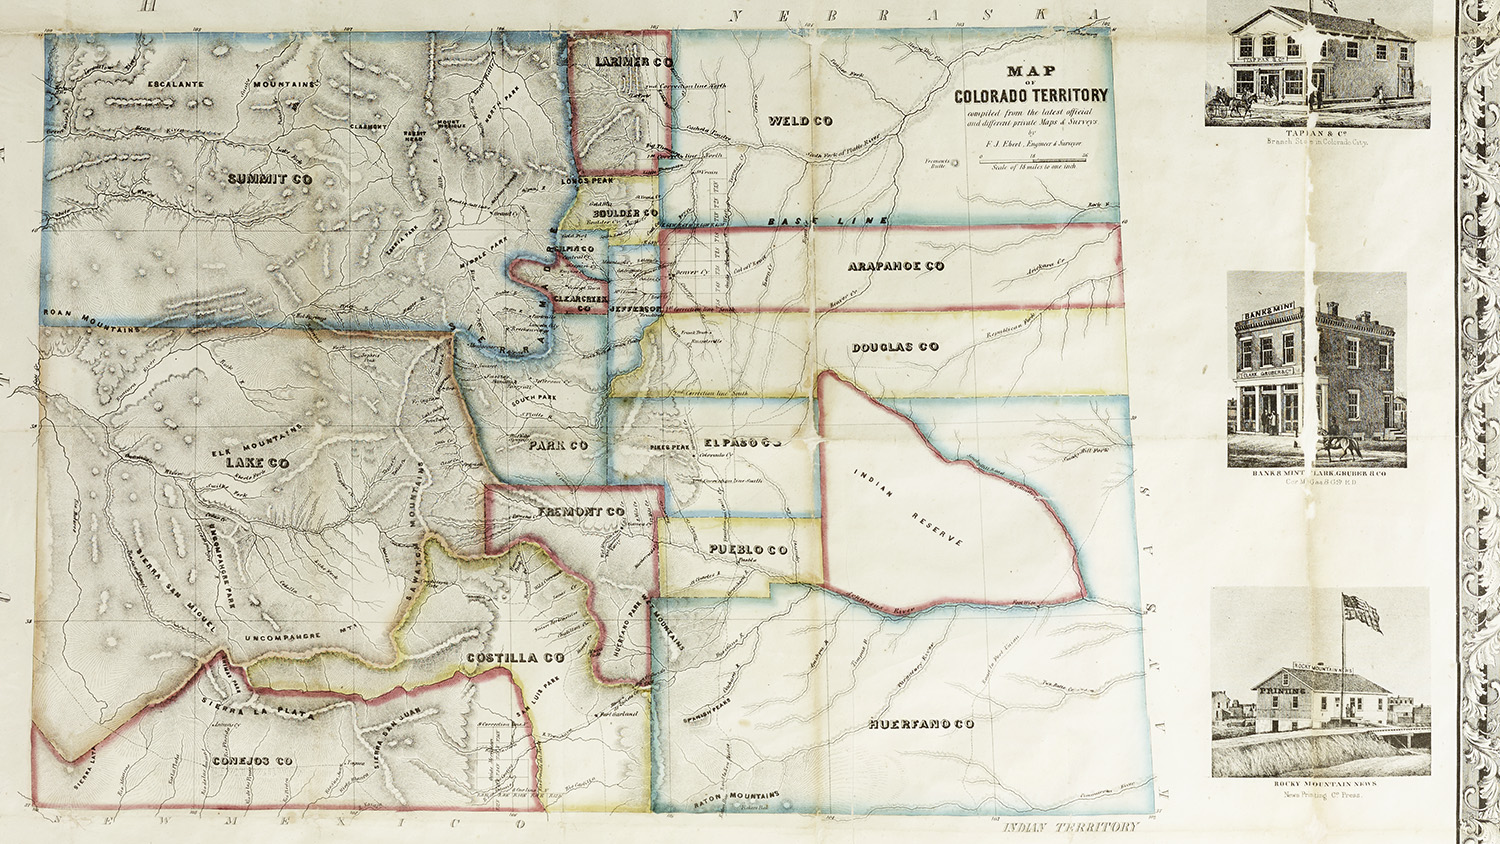 Map of the Colorado Territory from 1862, soon after the theft of Native American land along the front range of the Rocky Mountains